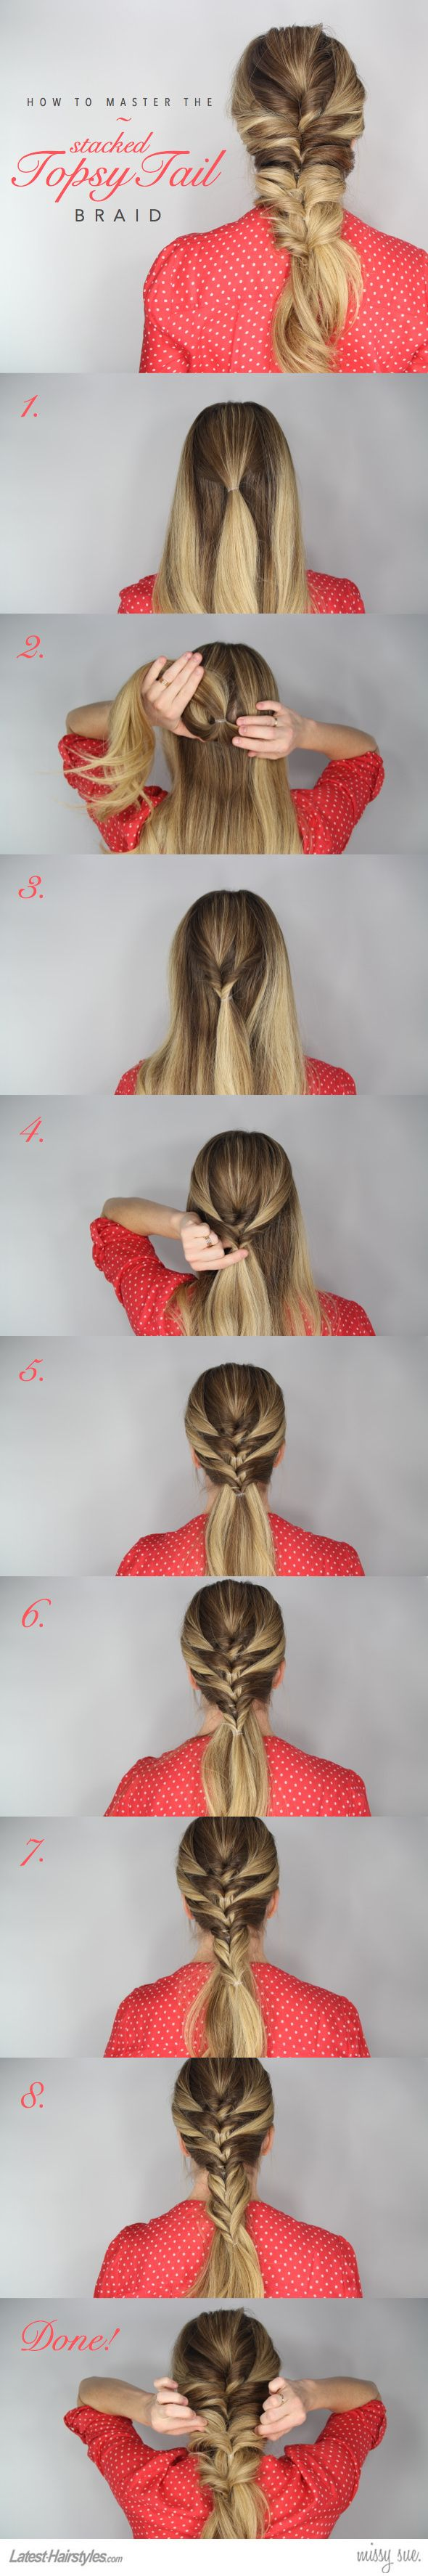 Let s Master This Stacked Topsy Tail Braid Tutorial